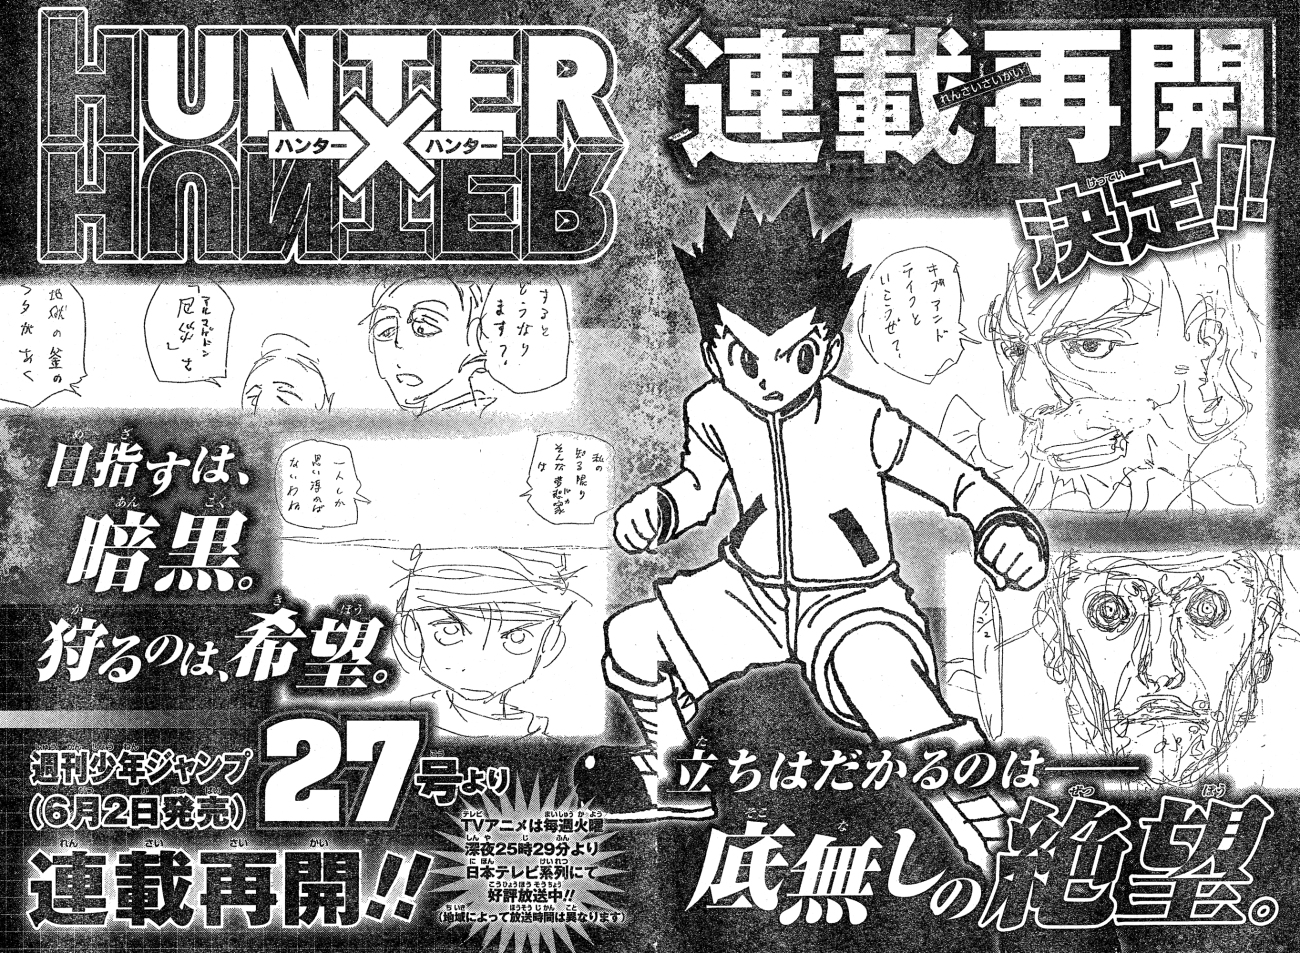 Hunter X Hunter Weekly shonen jump 2014 #22-23